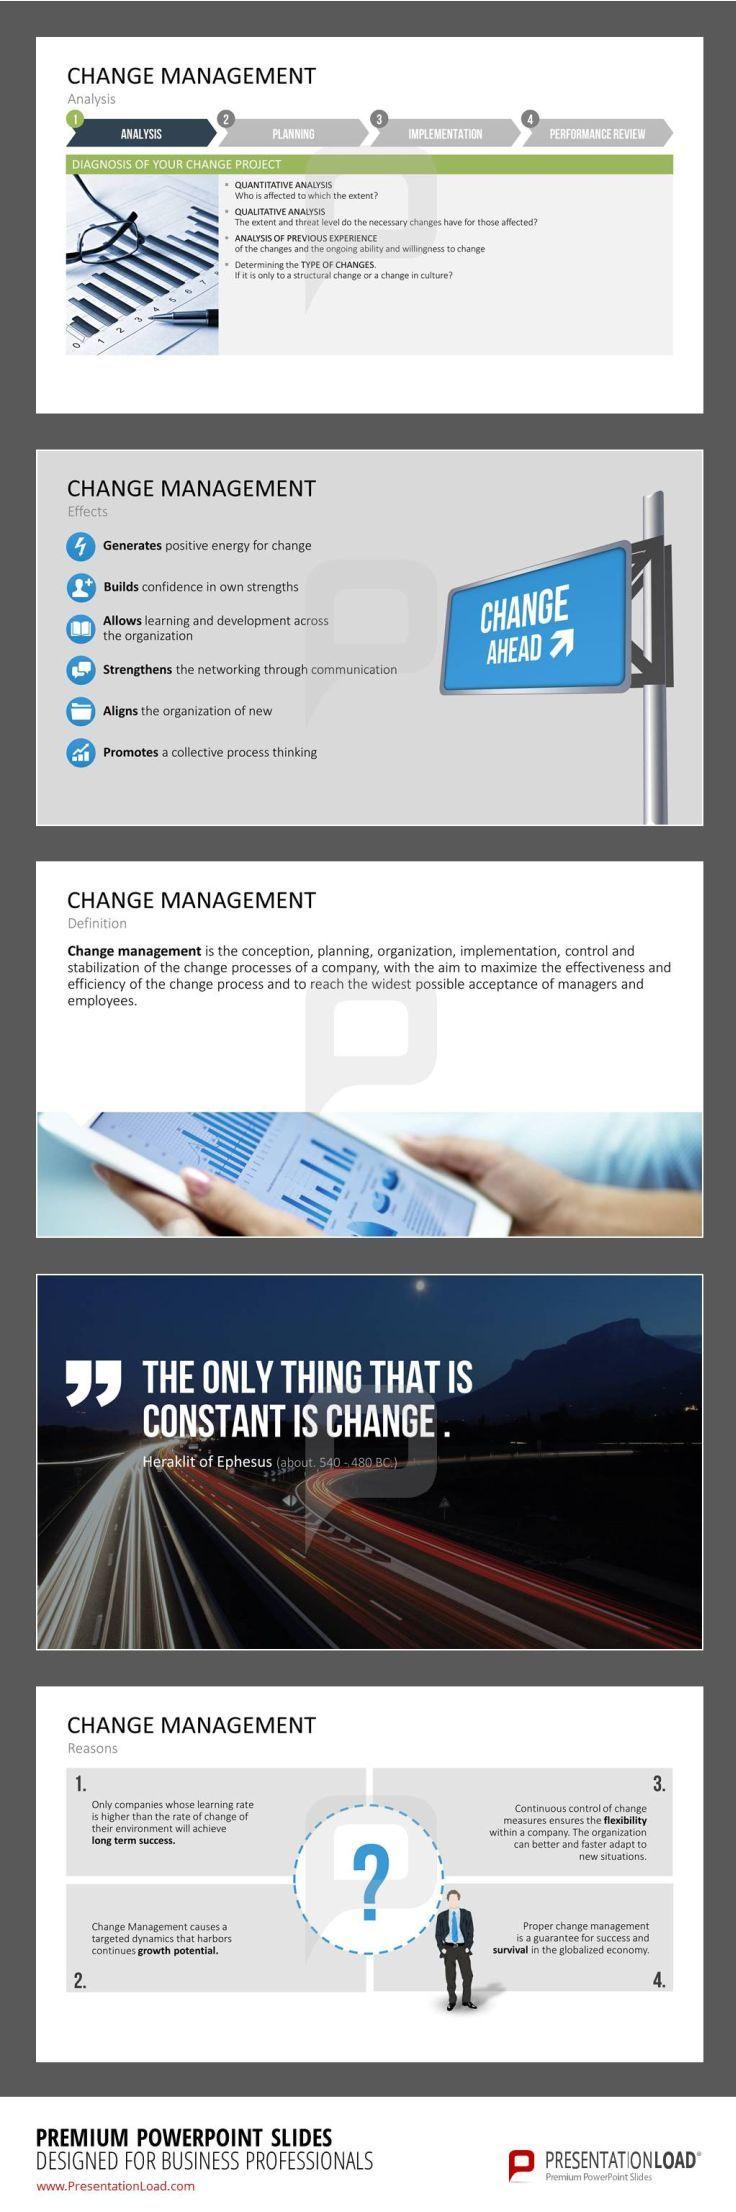 19 best change management powerpoint templates images on change management powerpoint template the extensive change management powerpoint set to successfully plan and implement change processes within your toneelgroepblik Image collections